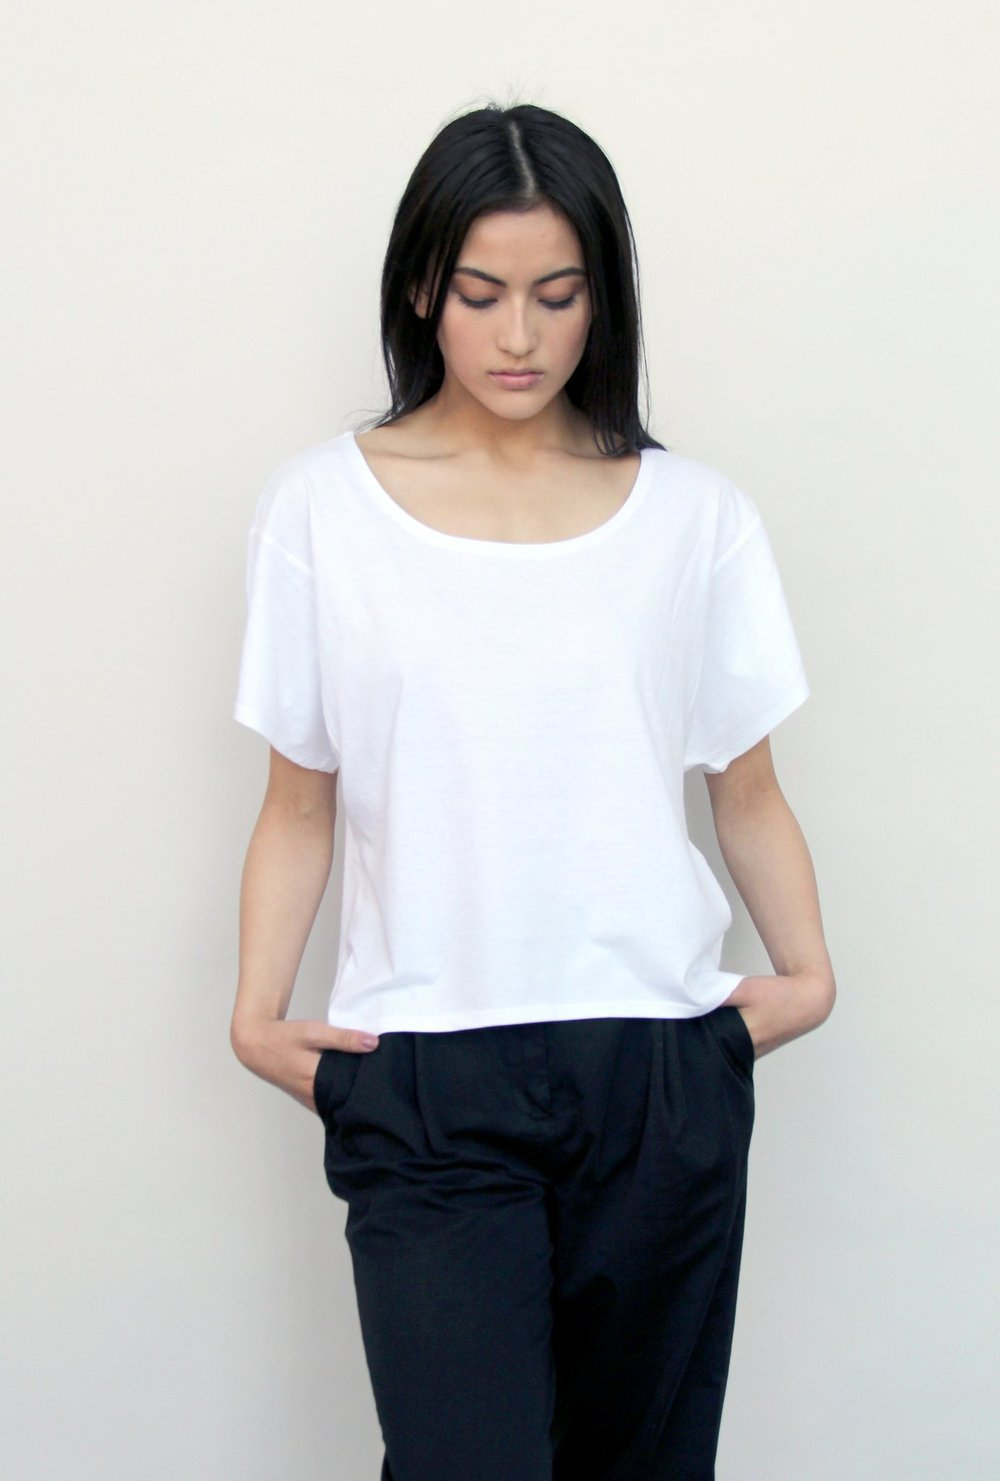 Women's Boxy Tee - White $32  Make a statement with this more-than-simple white tee. This is a completely sustainable tee-shirt, packed with the elements of carbon neutrality, fair trade, and organic materials. Thoughtfully made by artisans in Kenya.